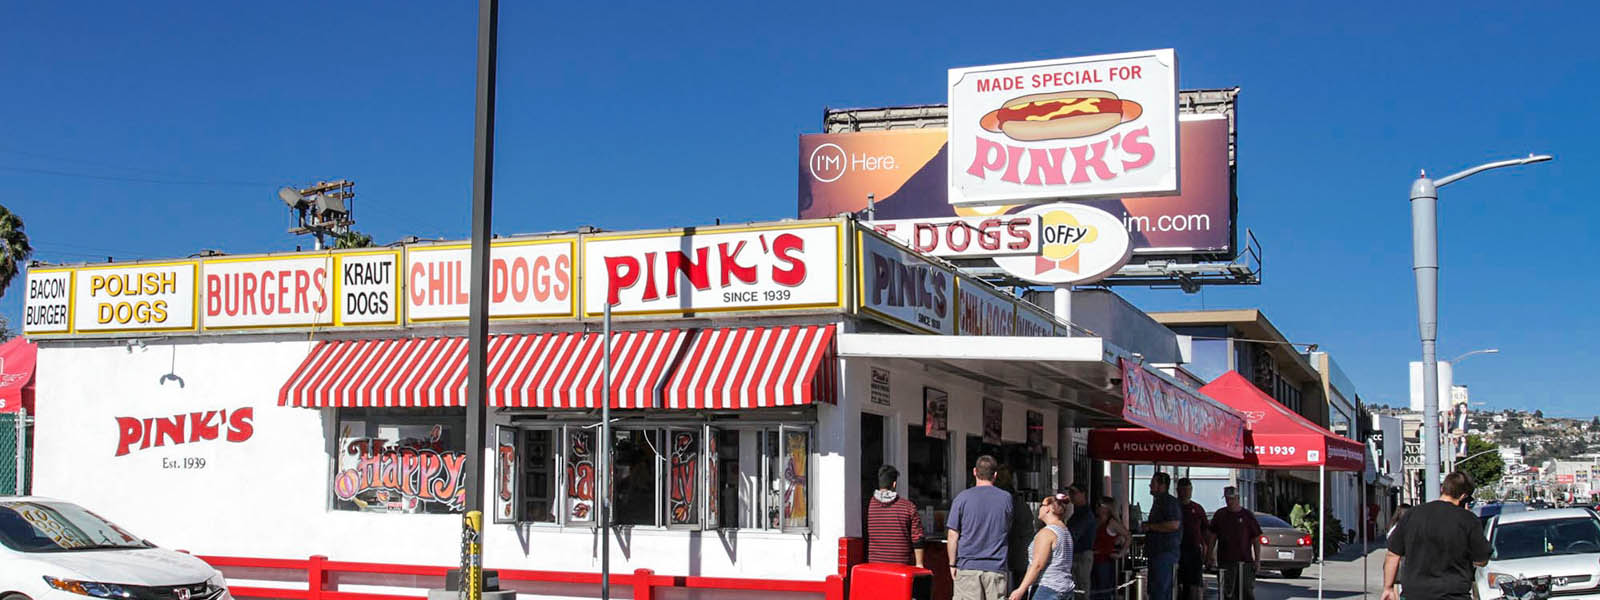 Famous Pink's Hot Dogs Restaurant in Los Angeles